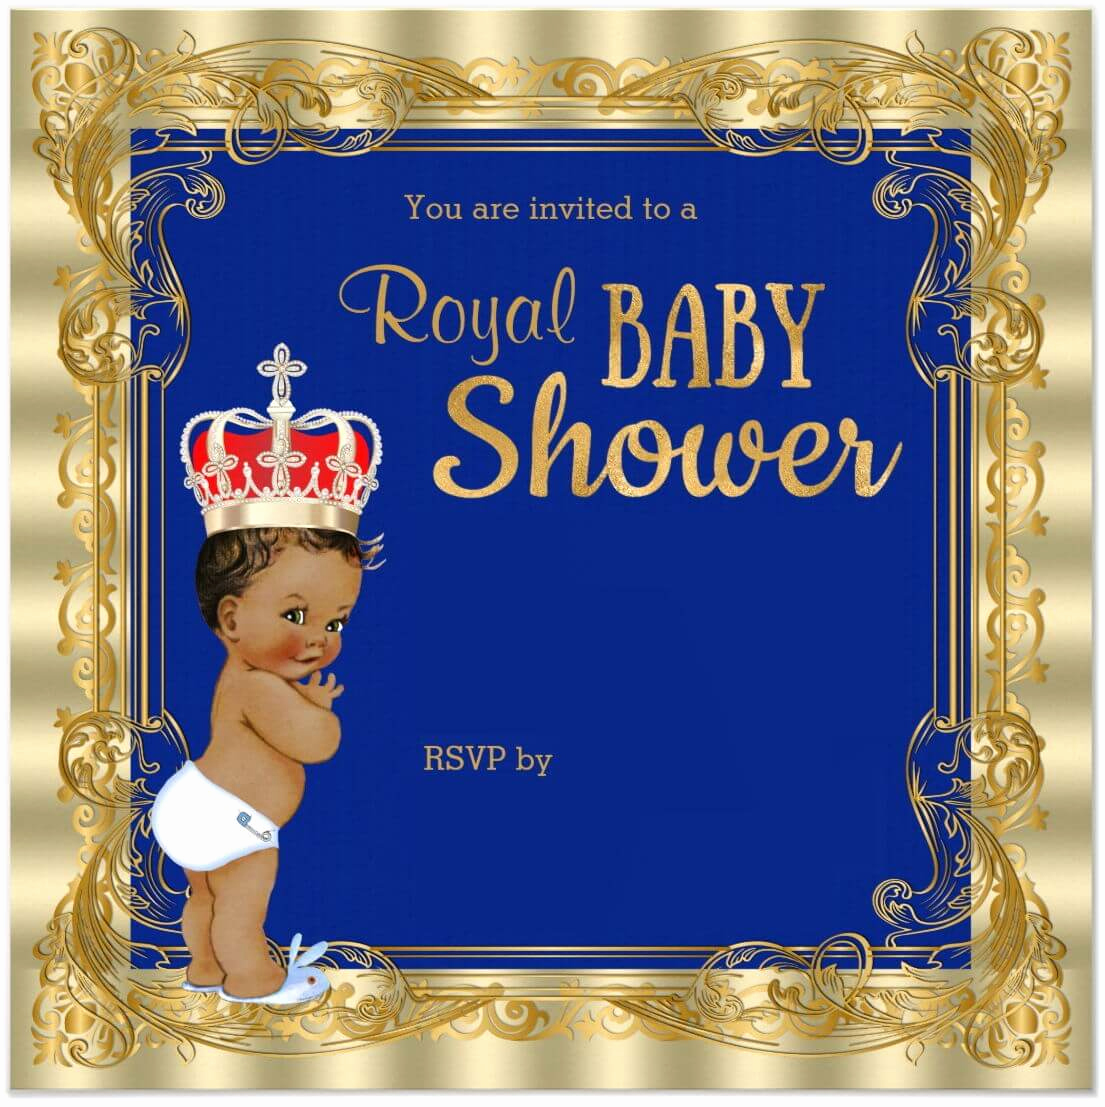 Royal Baby Shower Invitation Templates Beautiful Royal Baby Shower Printable Invitations